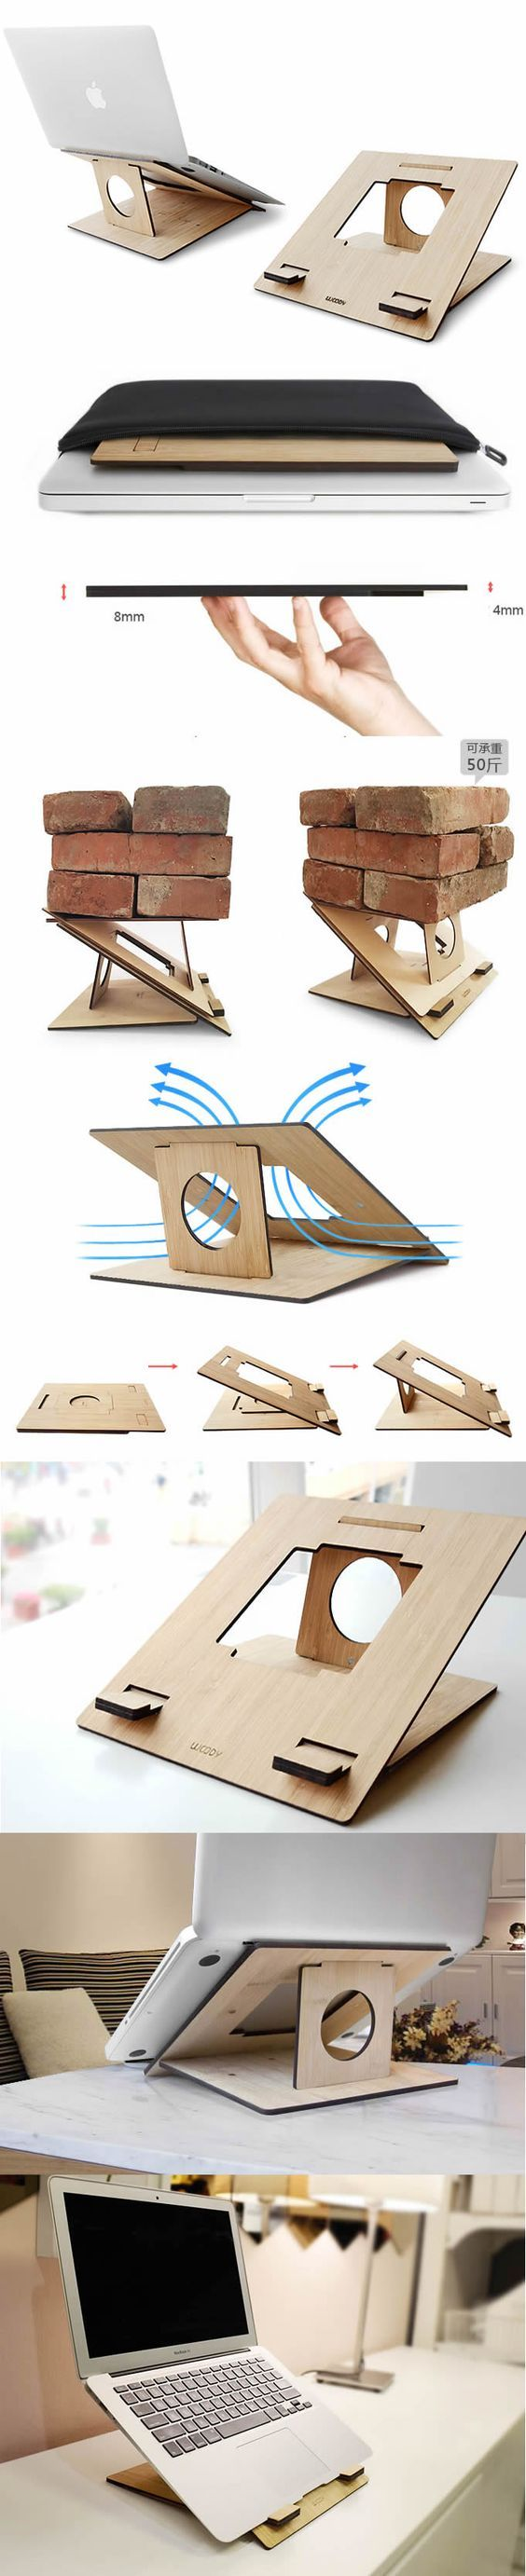 21 best ipad images on Pinterest   Product design, Woodworking and ...